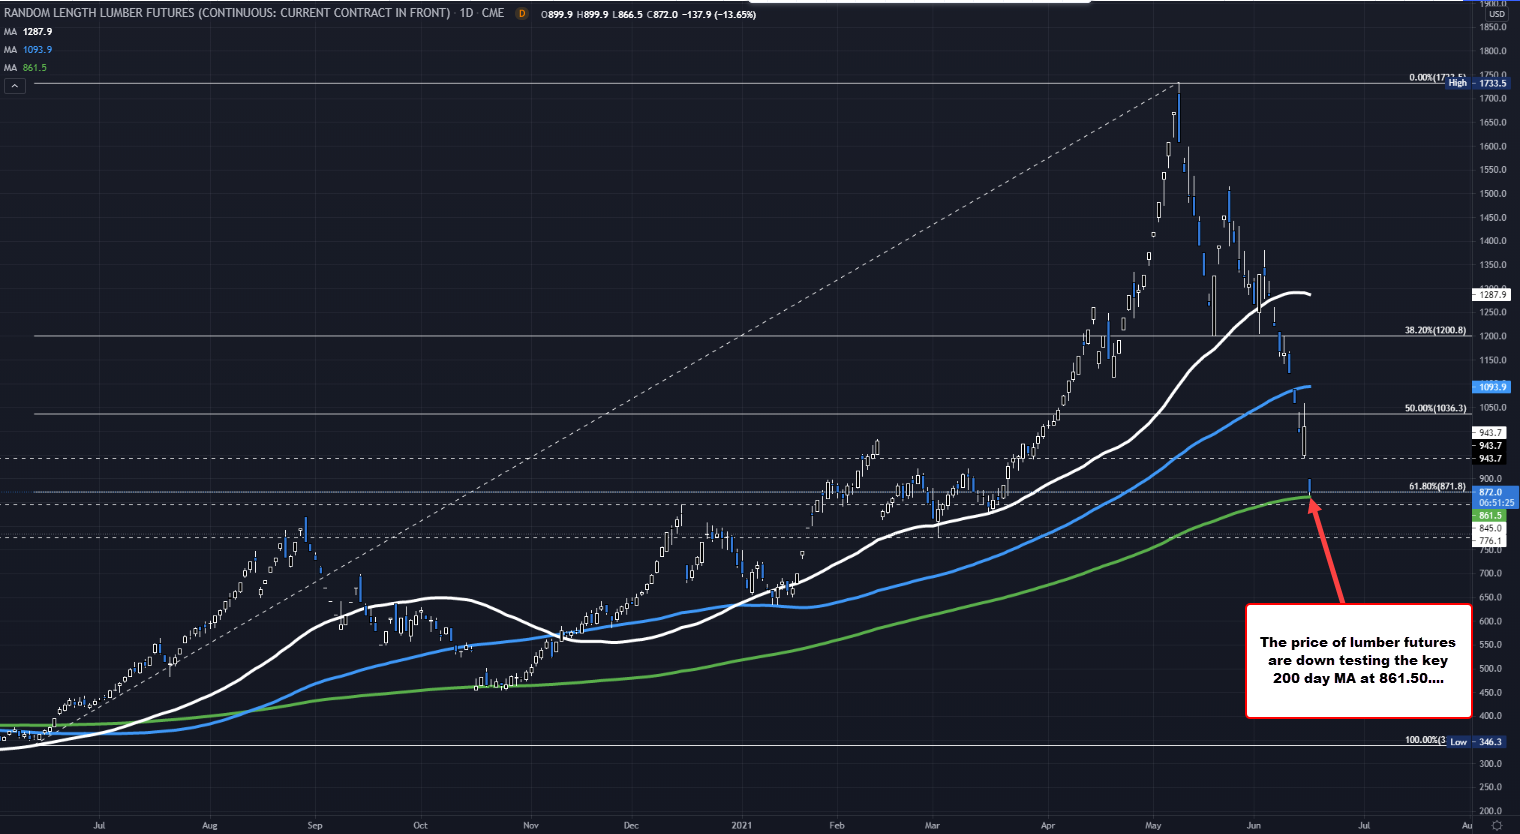 The high price on May 10 reached $1733.50. The price is now testing the 200 day MA at $861.50